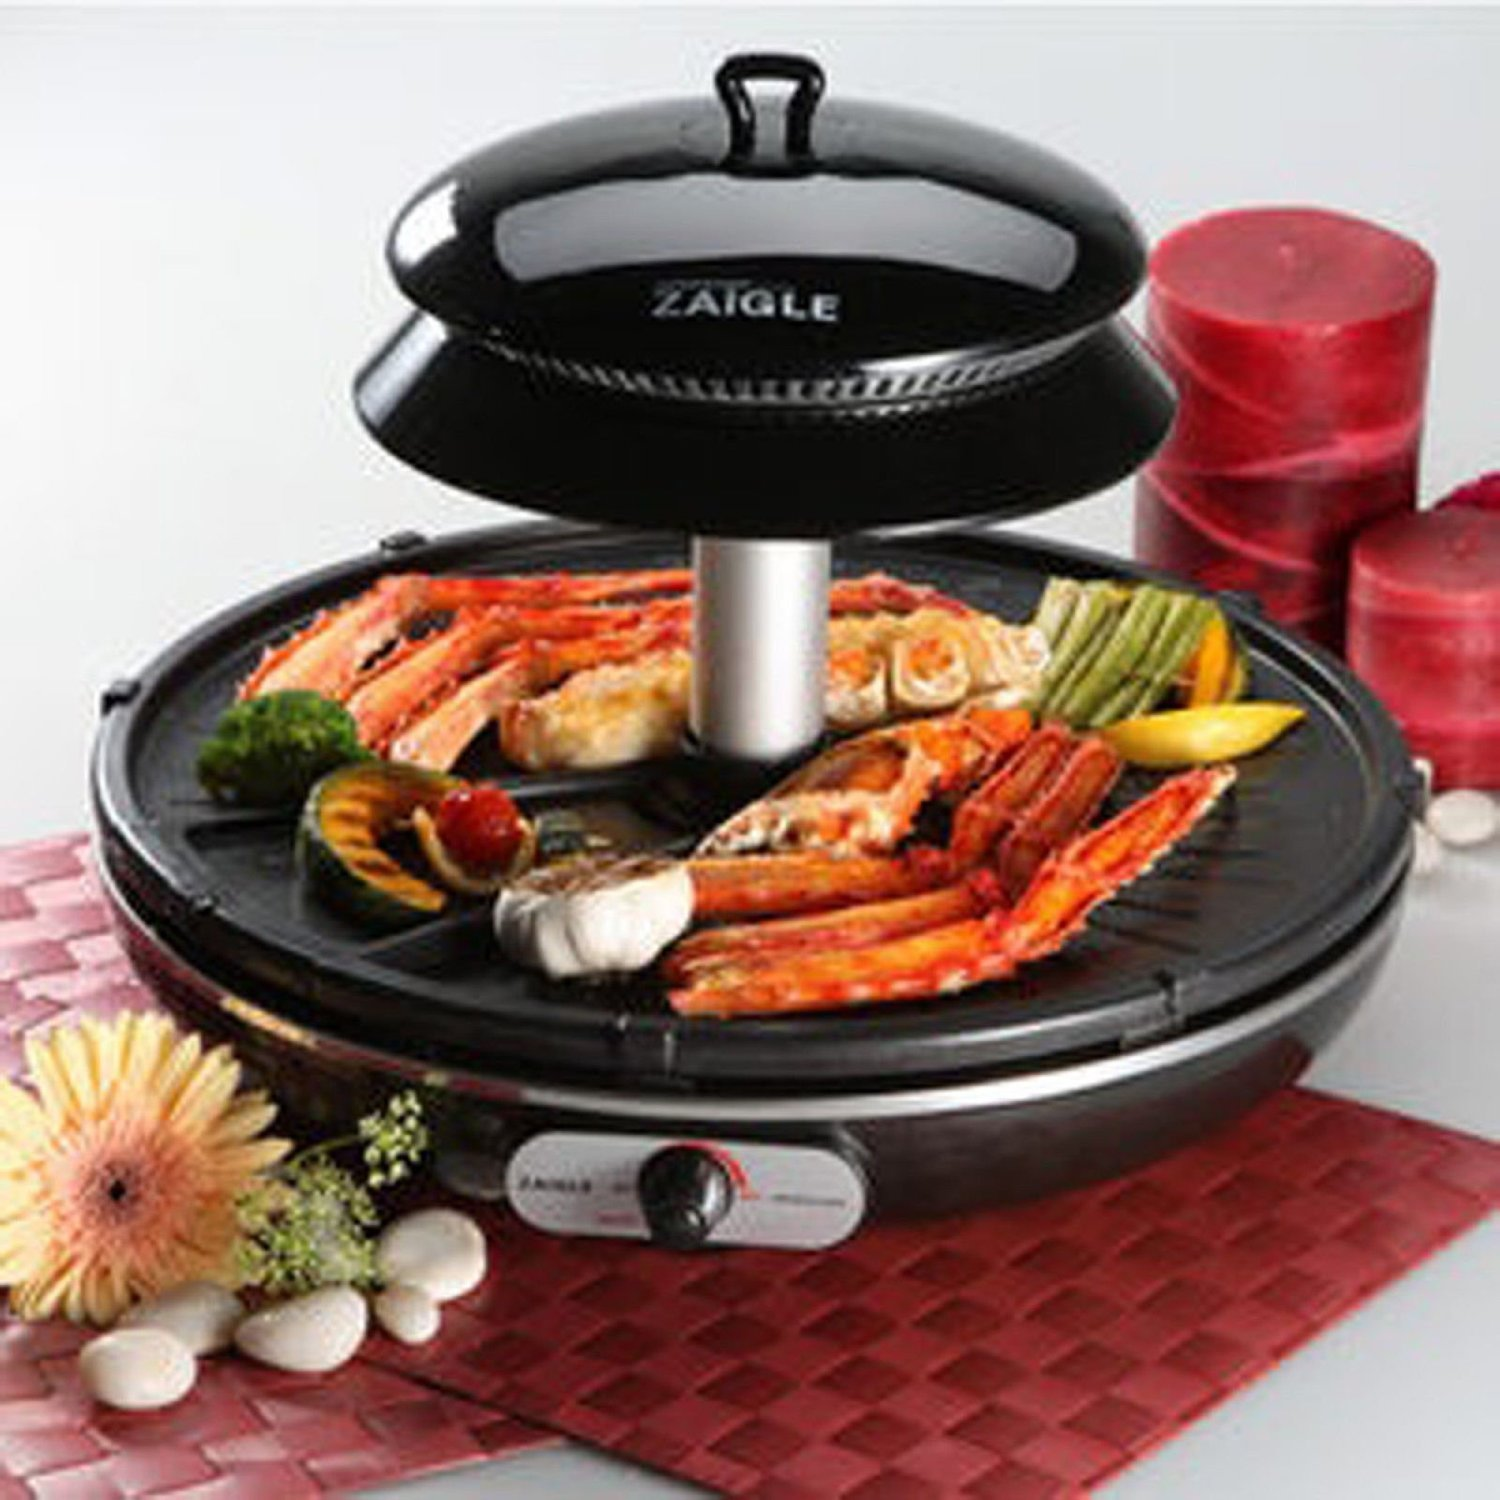 Amazon.com: ZAIGLE ZR-0907 Infrared Ray Well-being Roaster Indoor ...